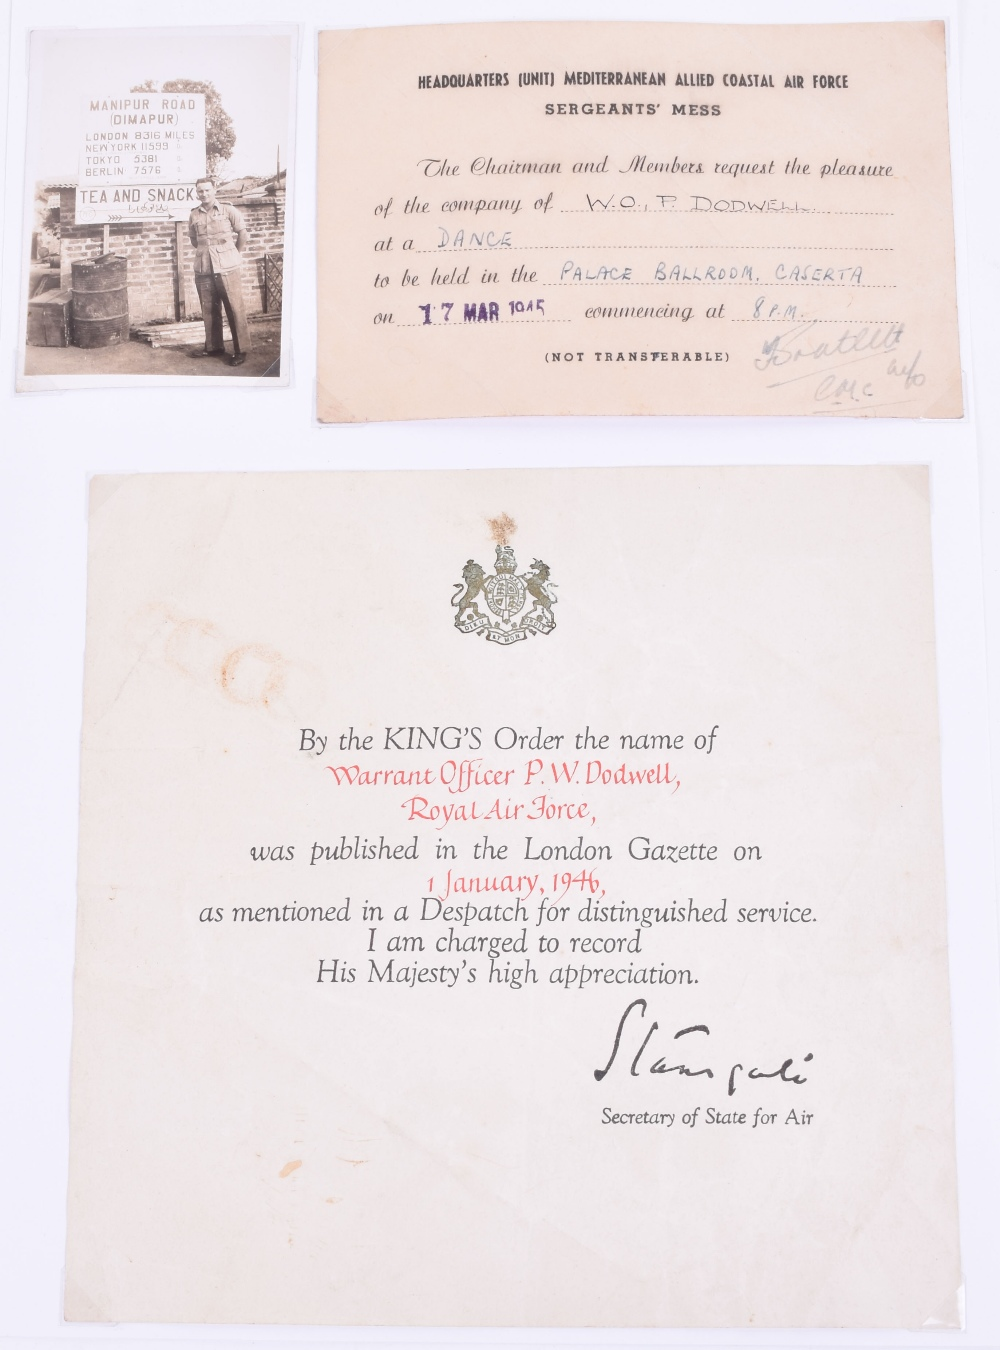 Lot 141 - WW2 Husband and Wife Military Paperwork, consisting of official documents and photographs relating